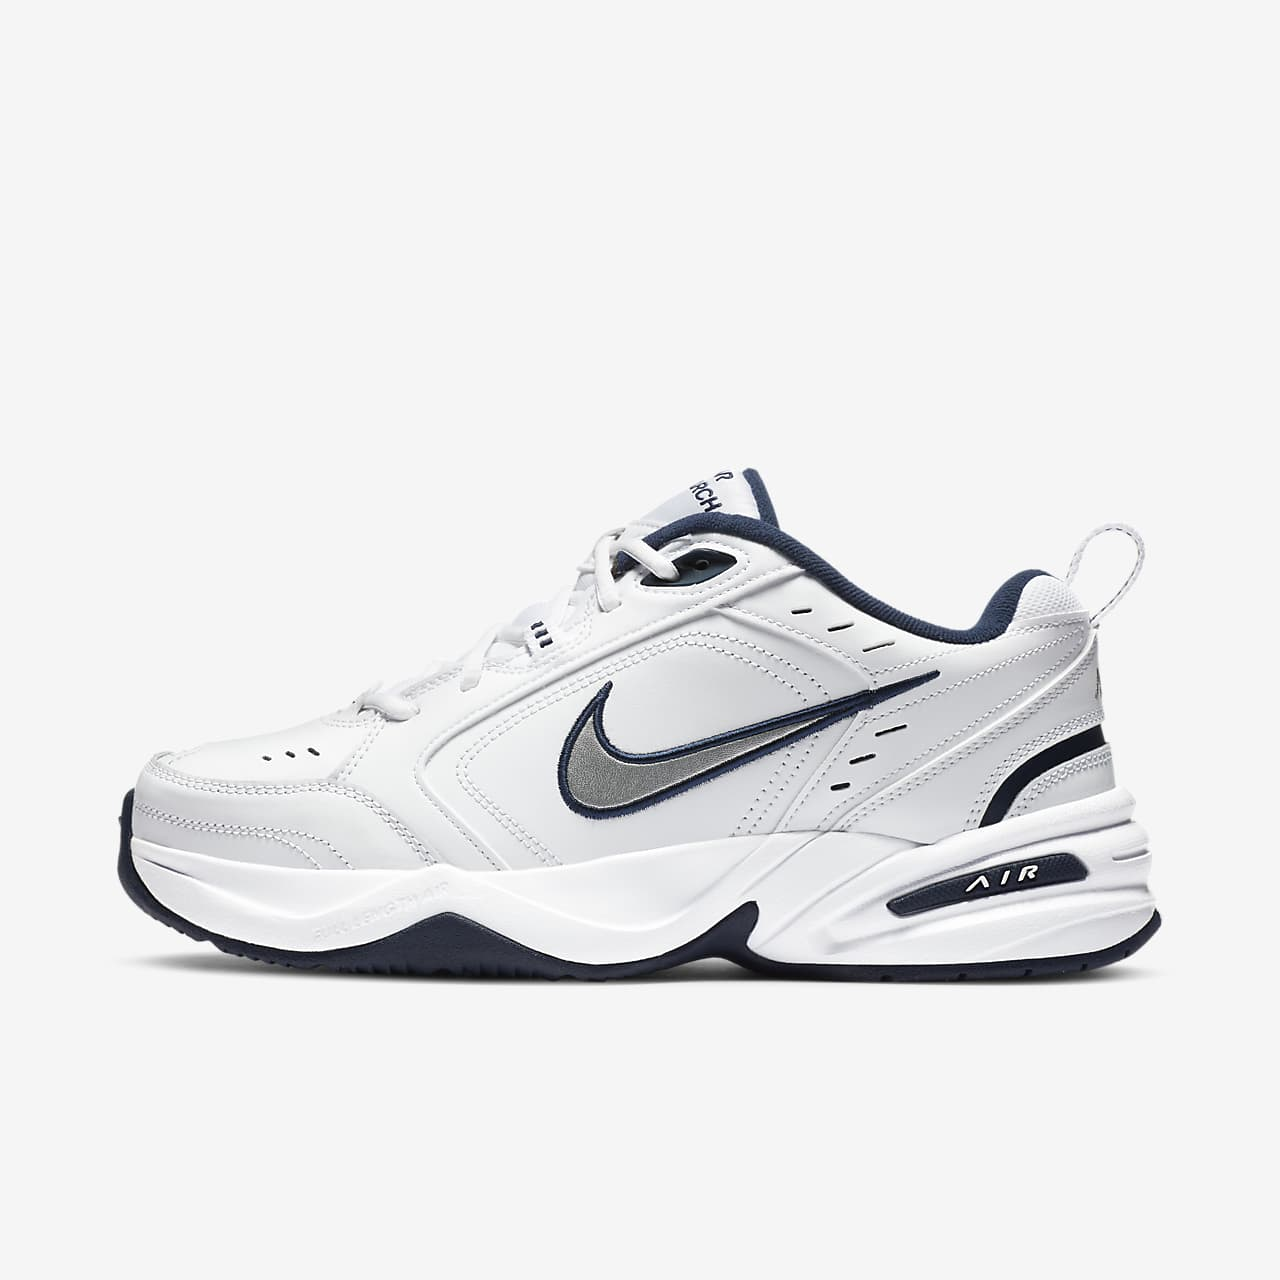 pretty nice 3f942 01a87 ... Chaussure de fitness et lifestyle Nike Air Monarch IV